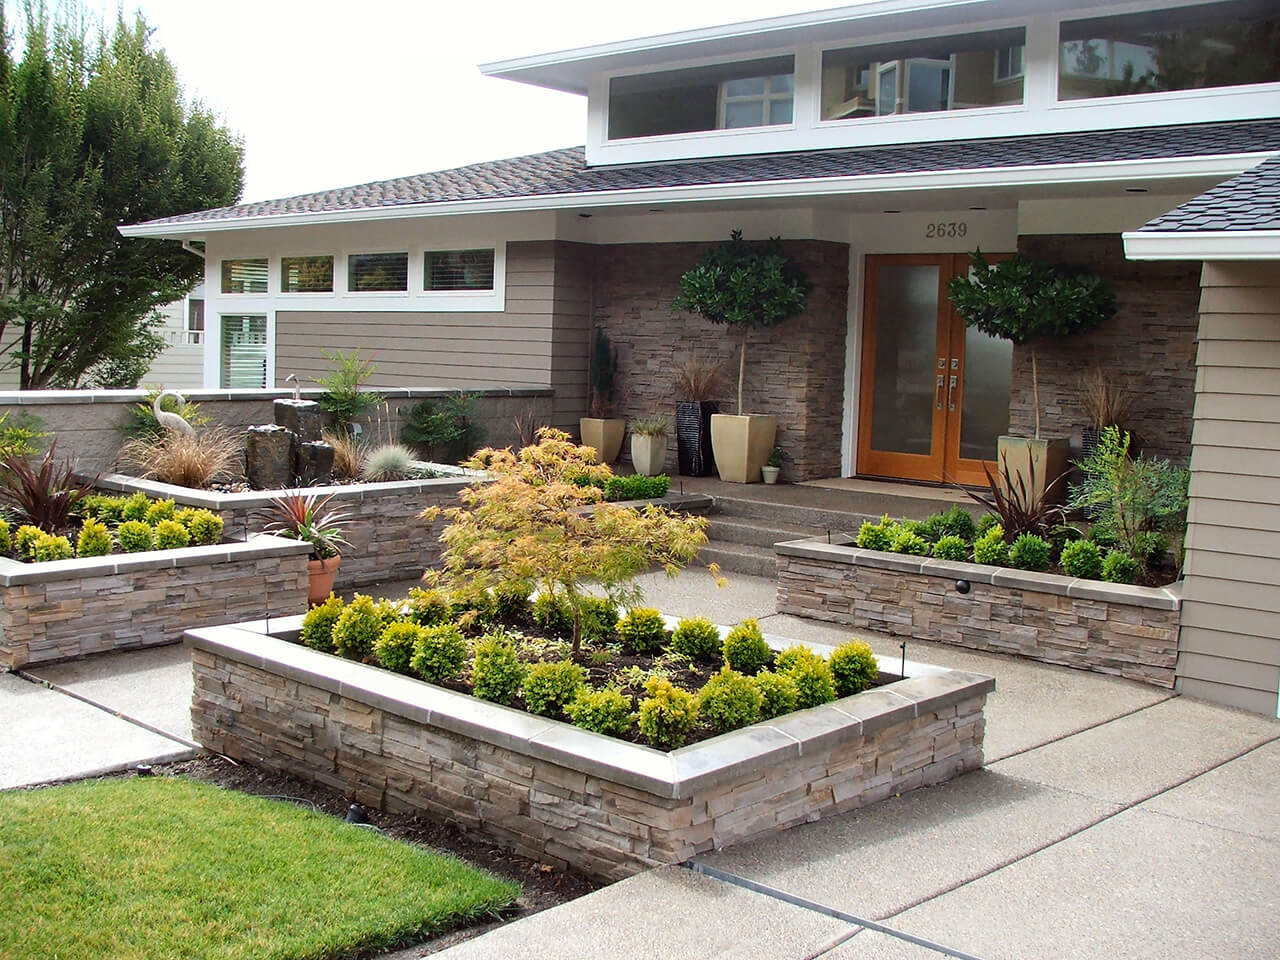 20 brilliant front garden landscaping ideas style motivation for Home front garden ideas